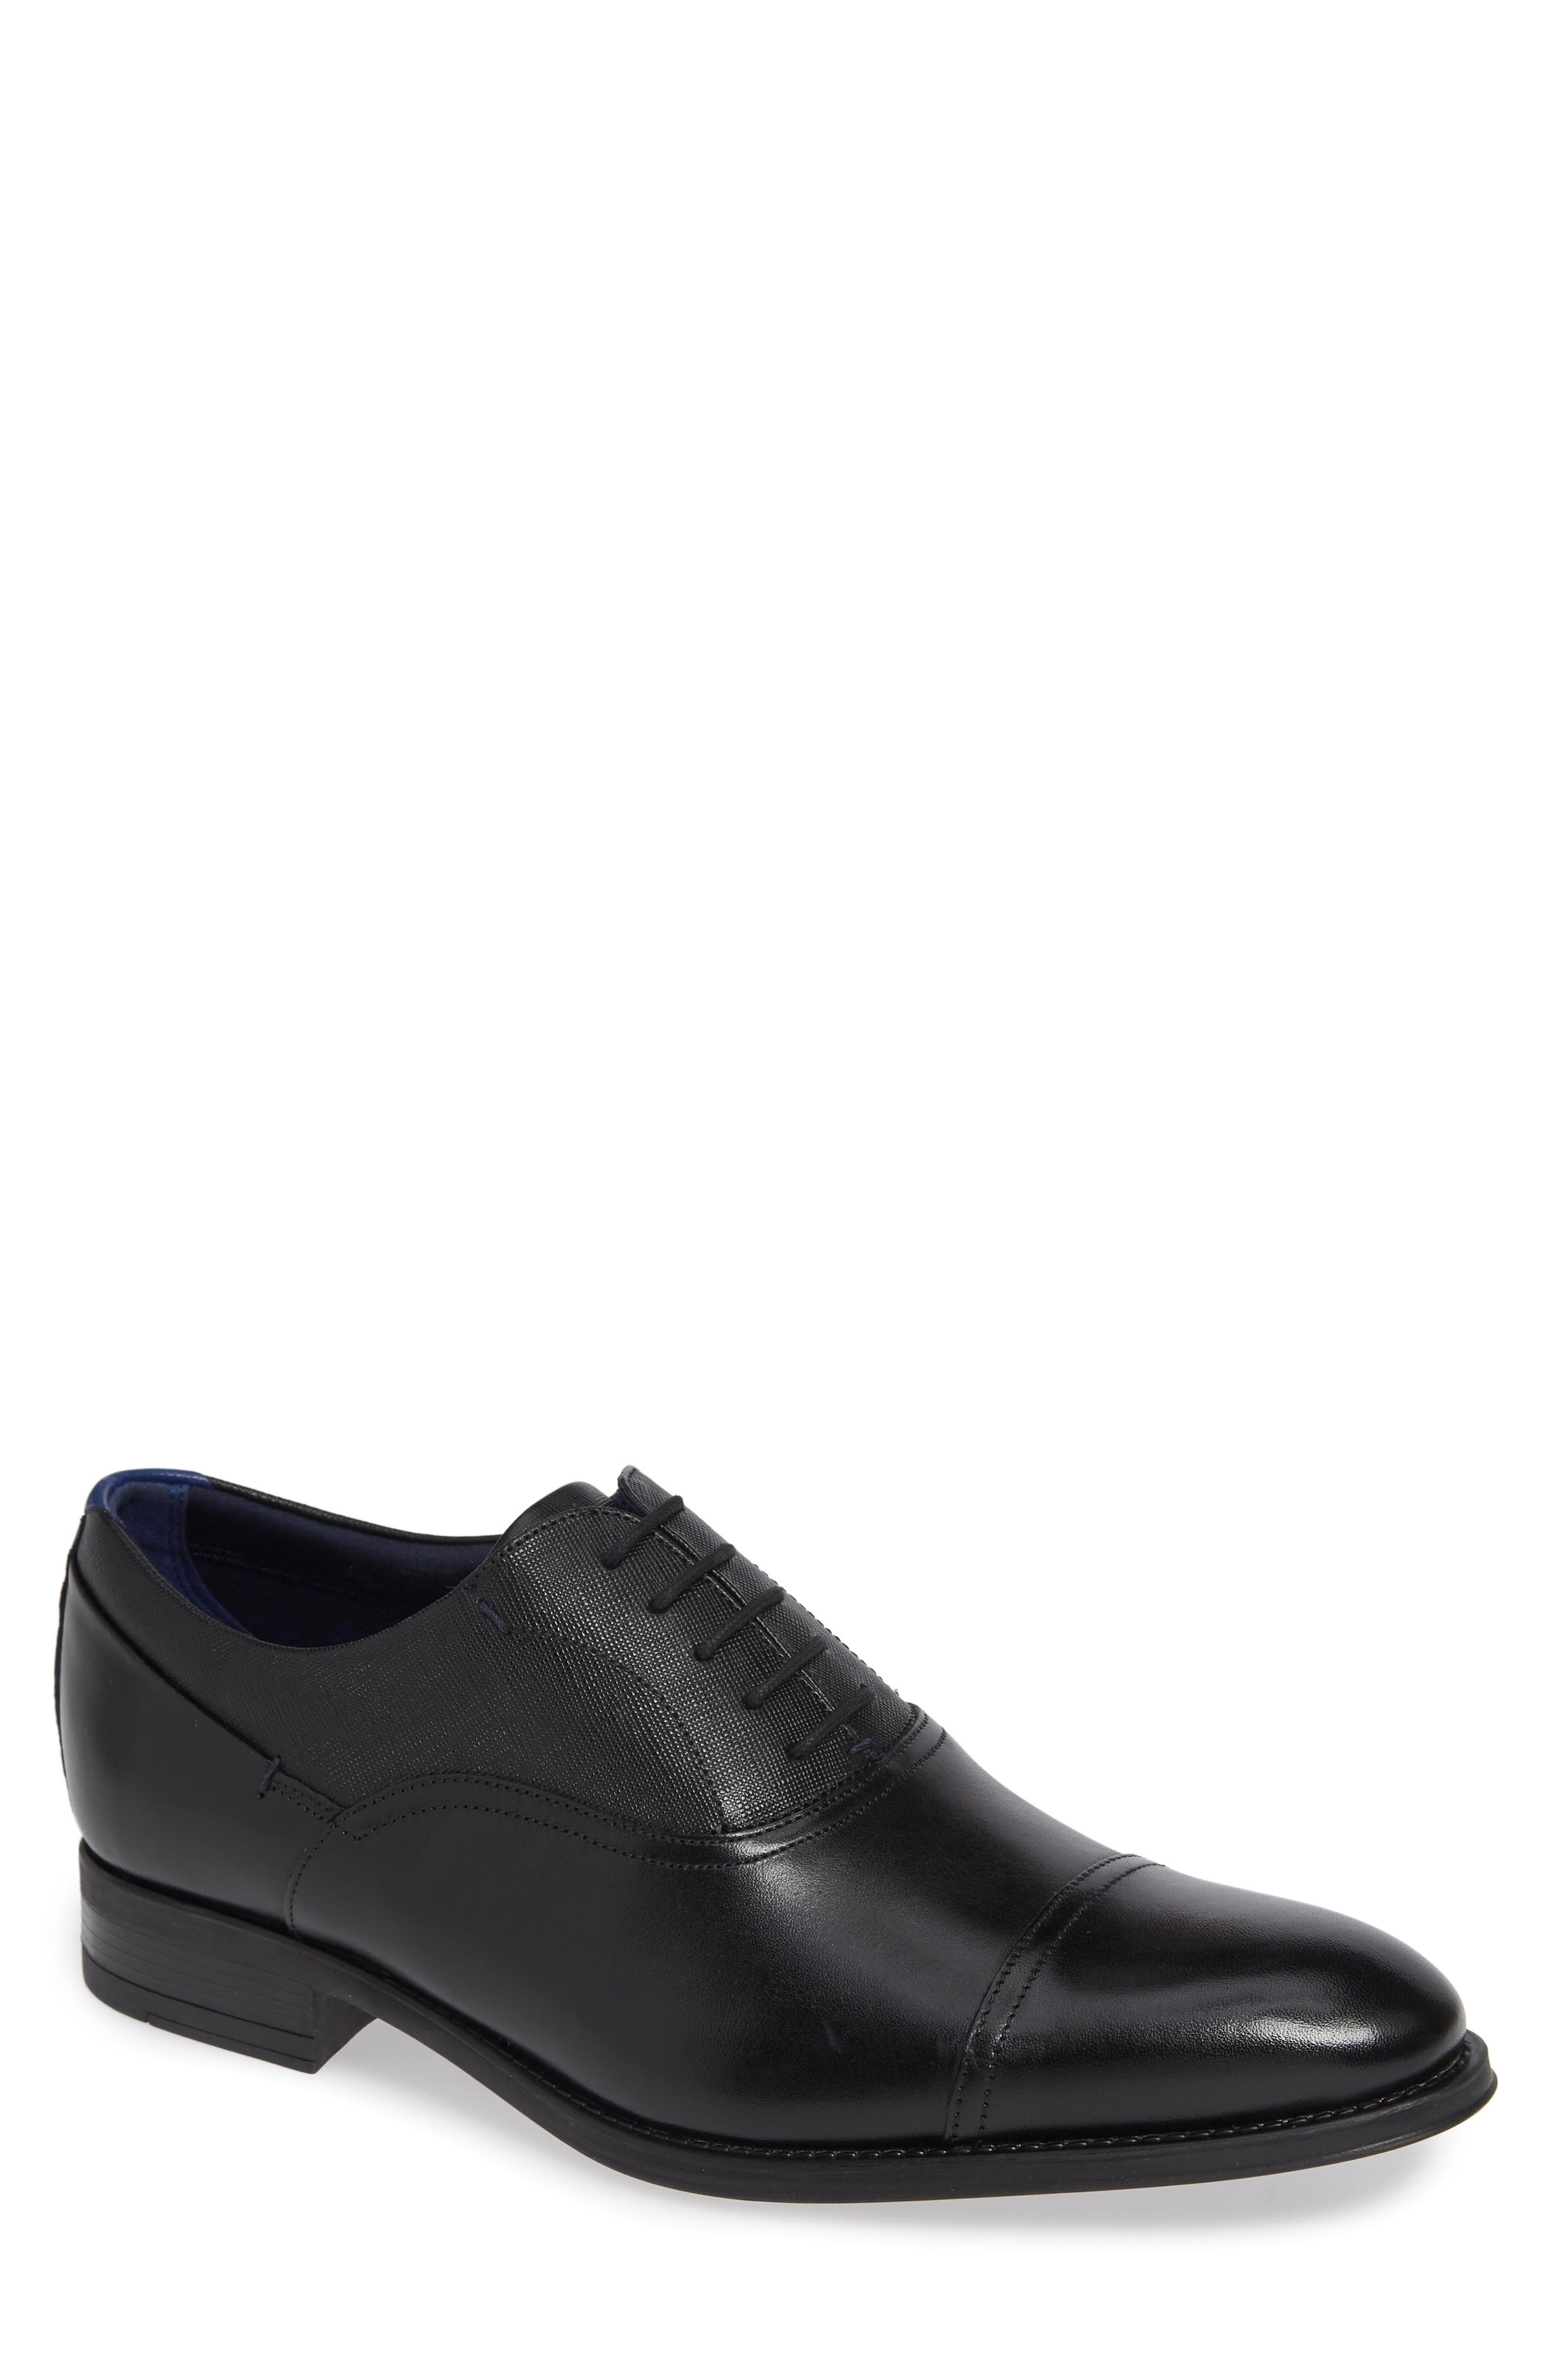 Fhares Cap Toe Oxford,                         Main,                         color, BLACK